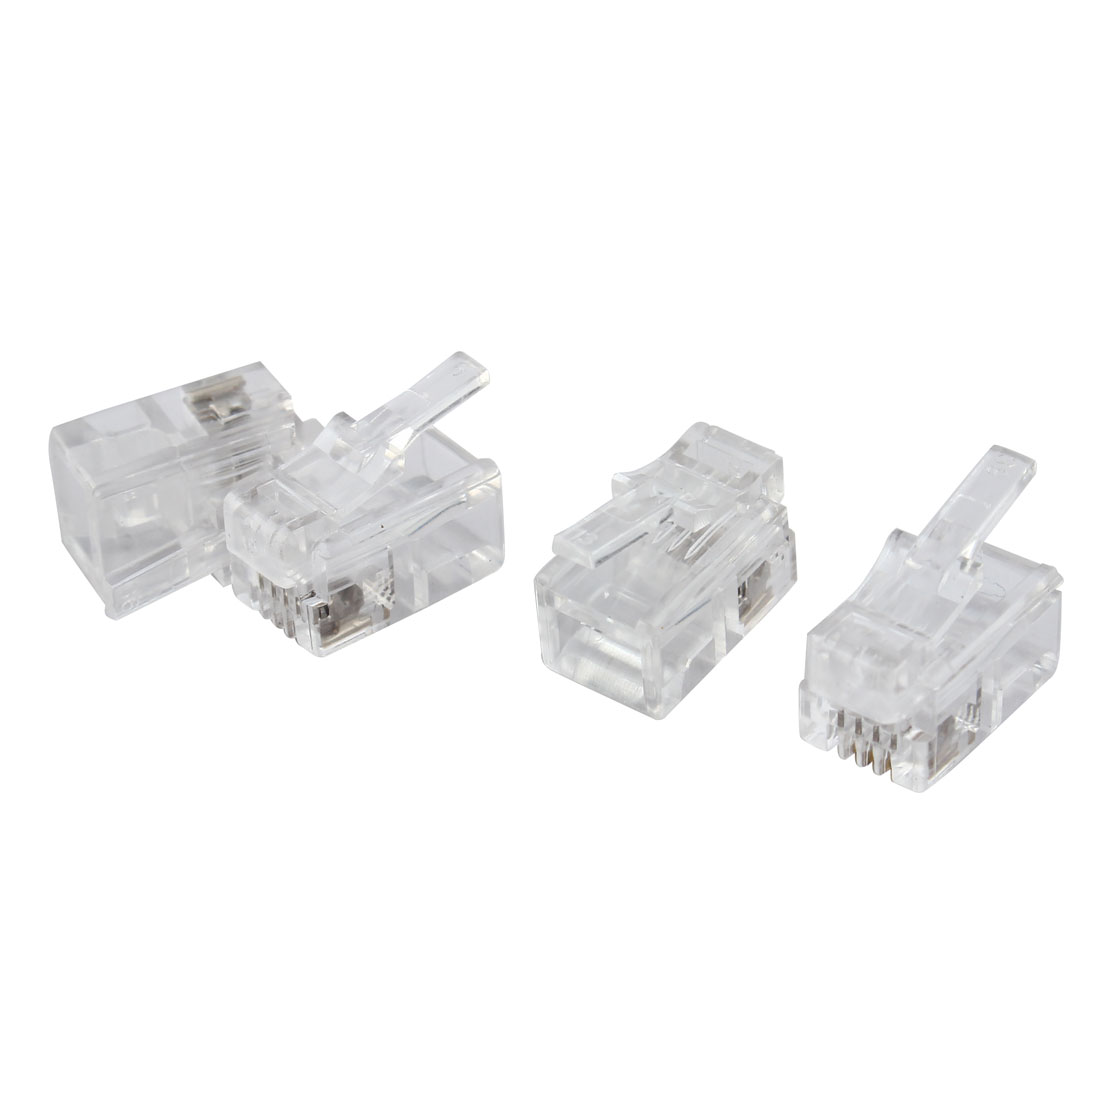 4 Pcs 4 Pin RJ10 4P4C Connector Clear for Handset Cable